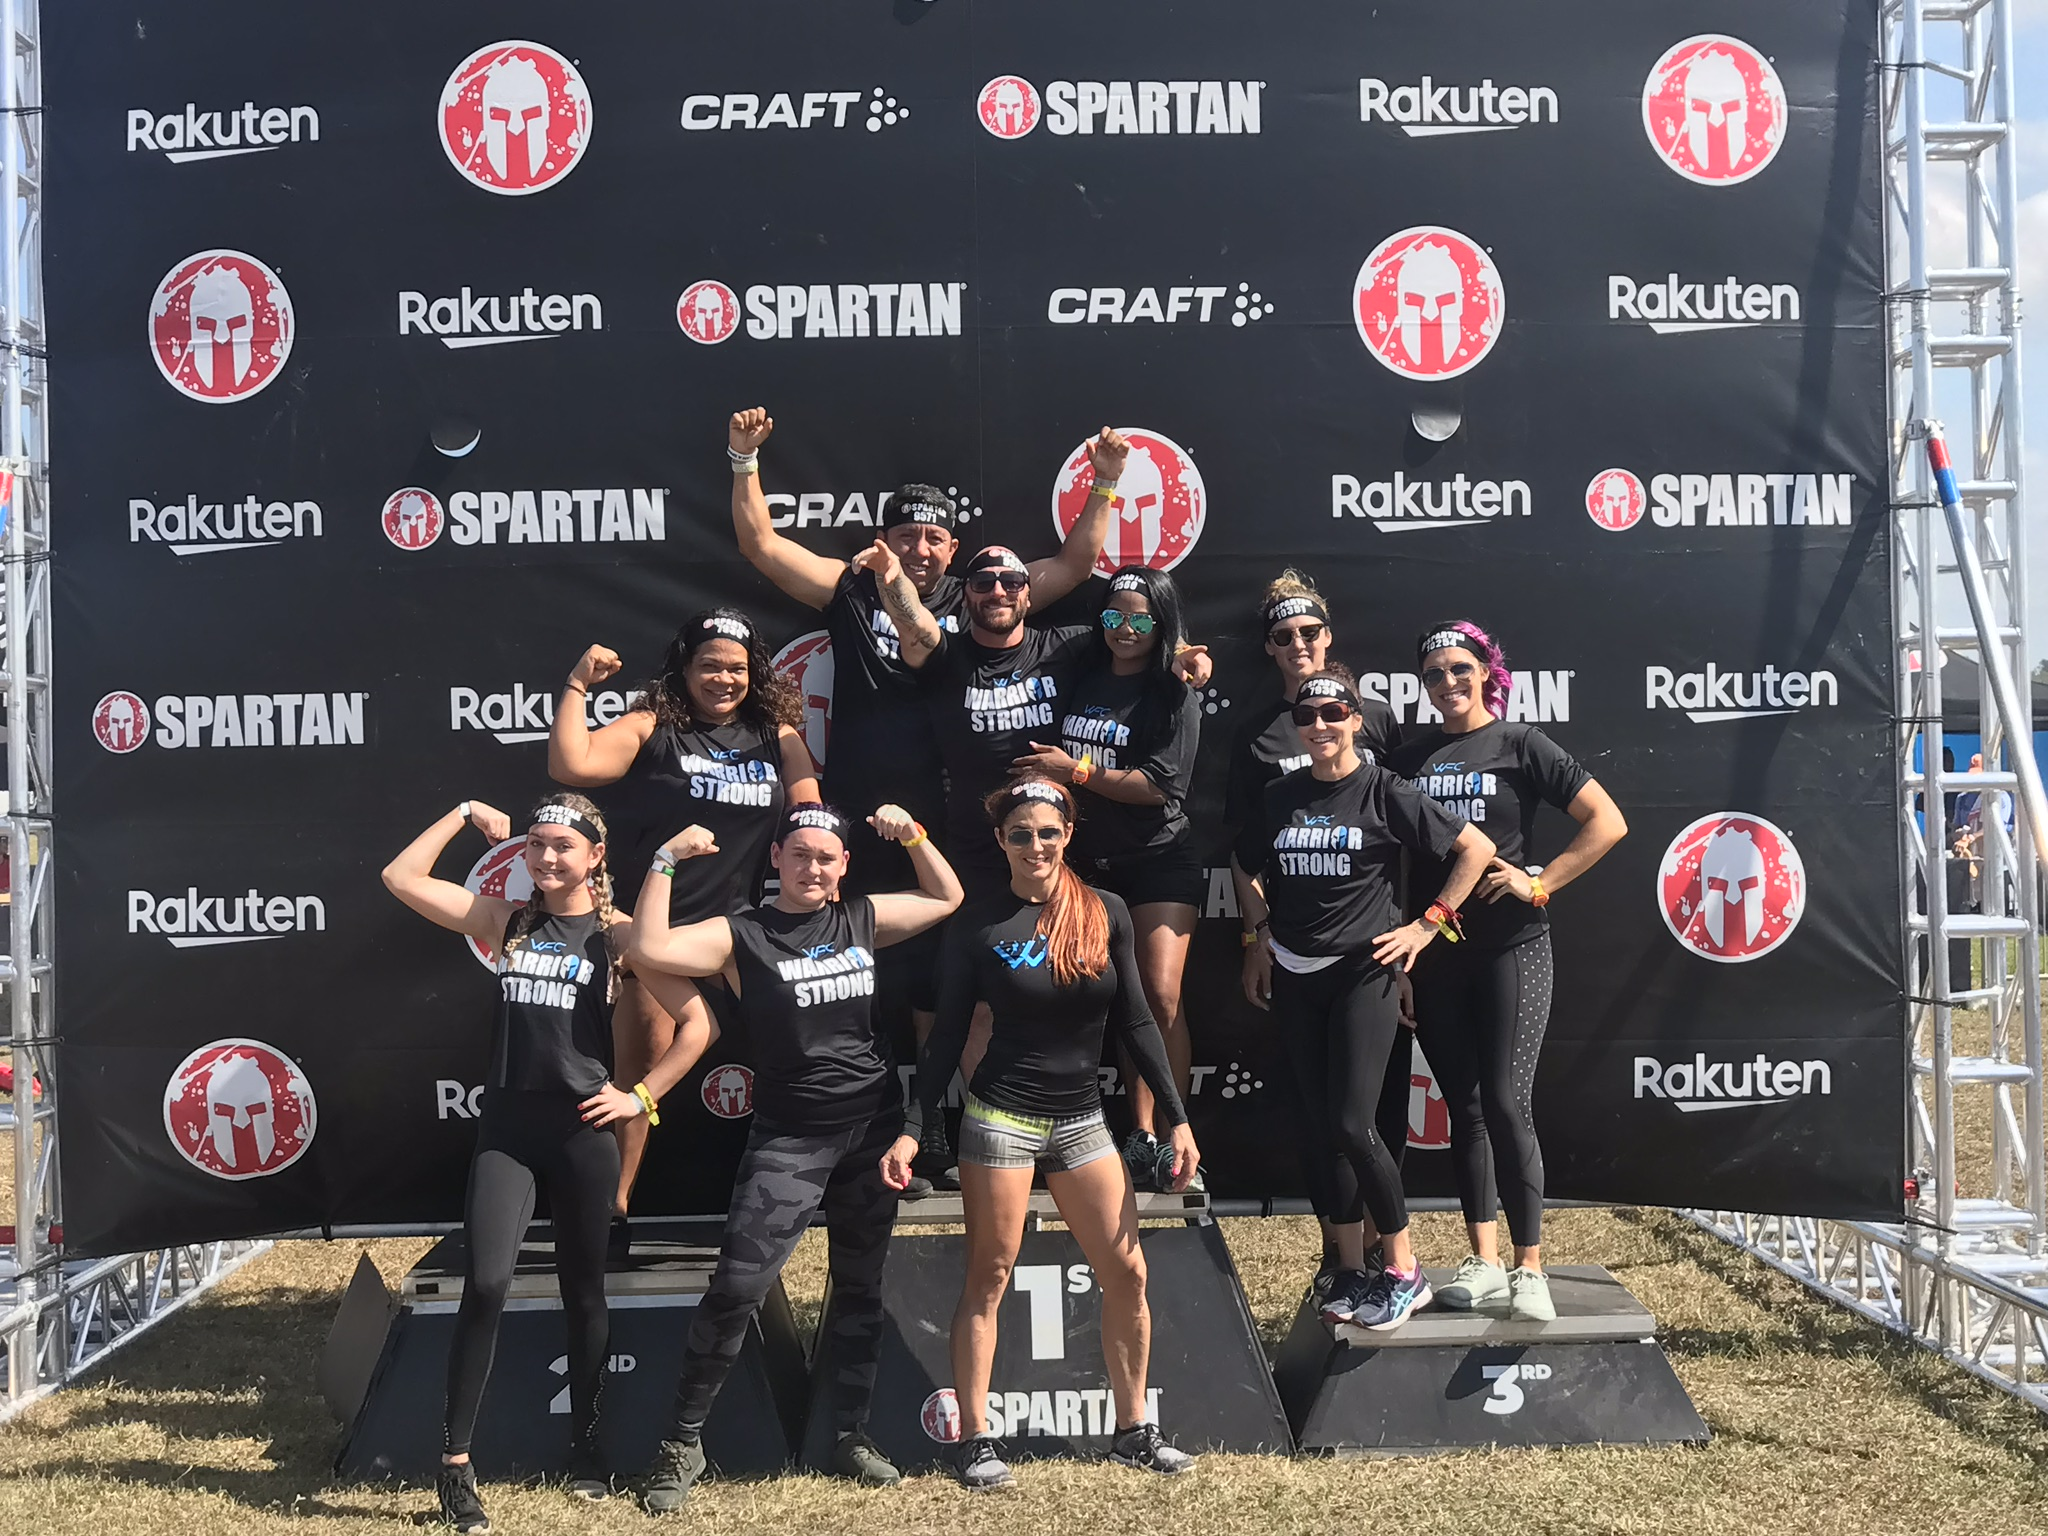 Spartan SGX OCR Training - Davie's Premiere OCR Training Camp. Whether you're an elite racer or a beginner to fitness, we have the coaches and classes for you to have fun and be challenged! Warrior Fit and Spartan SGX provides you with a unique way to take charge of your fitness goals and keep things interesting with a variety of exercises not found at your typical gym. This is a great way to workout with your friends and loved ones, or if you're looking for like minded good people this is the place for you!Spartan SGX is a program designed to create an exhilarating and community driven group atmosphere of fitness, nutrition, and performance that optimizes individual performance in Spartan Races, as well as daily life. You will run, jump, climb, push, pull, throw, stretch, breathe and sweat to build both mental and physical endurance and stamina and you will do so in an environment that challenges you to achieve goals you never thought possible.